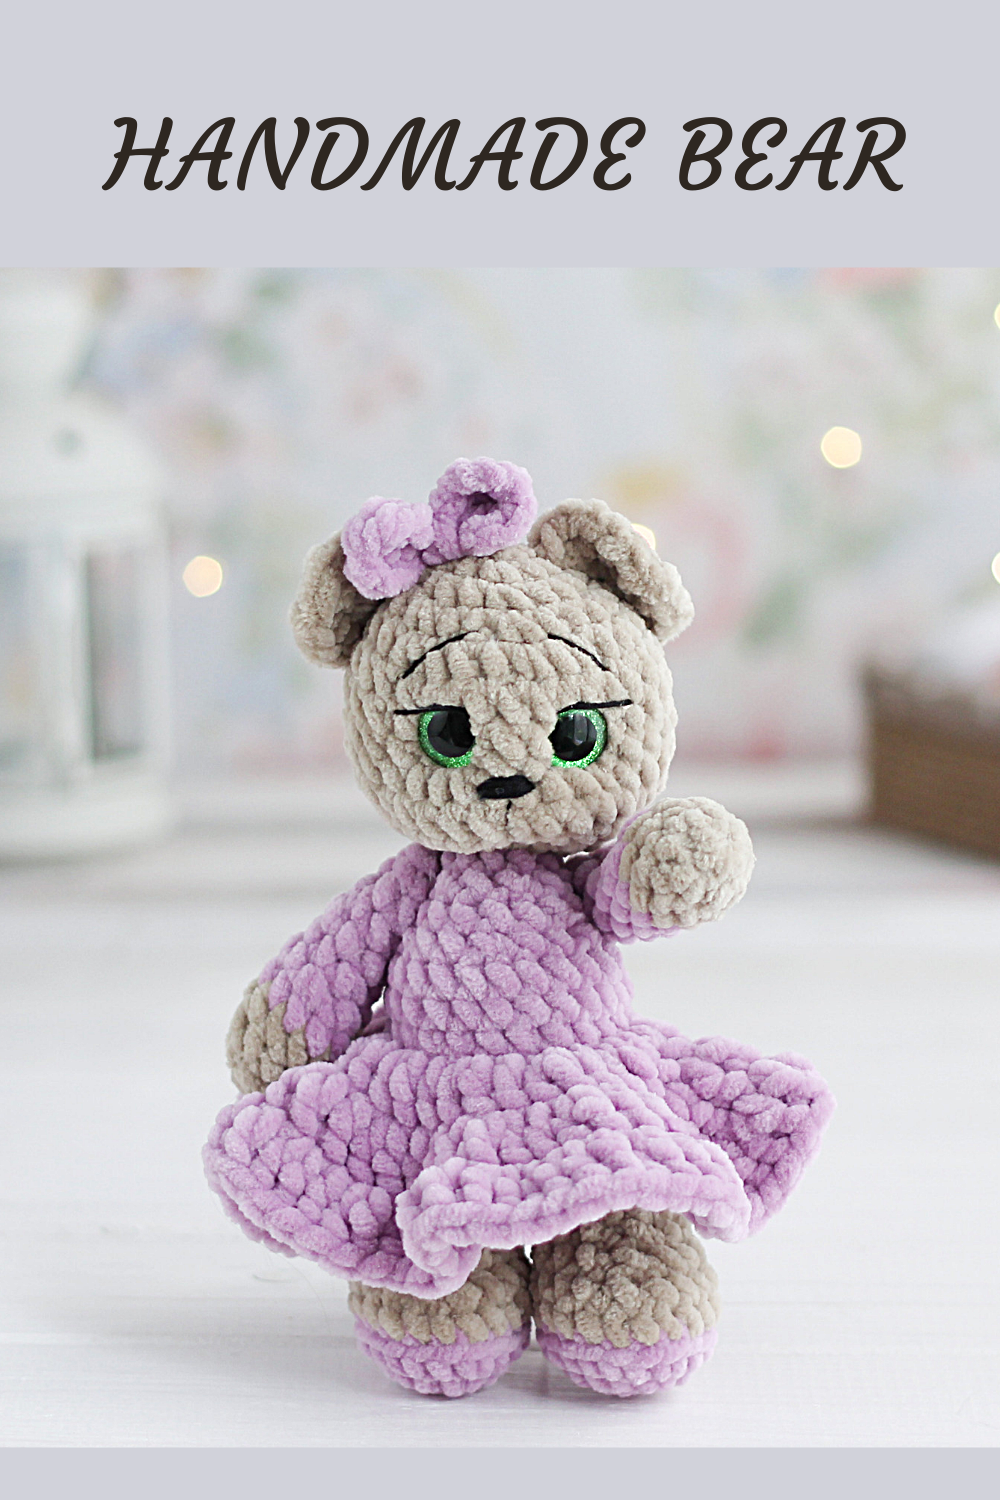 Stuffed teddy bear in dress for 1 year old girl gift